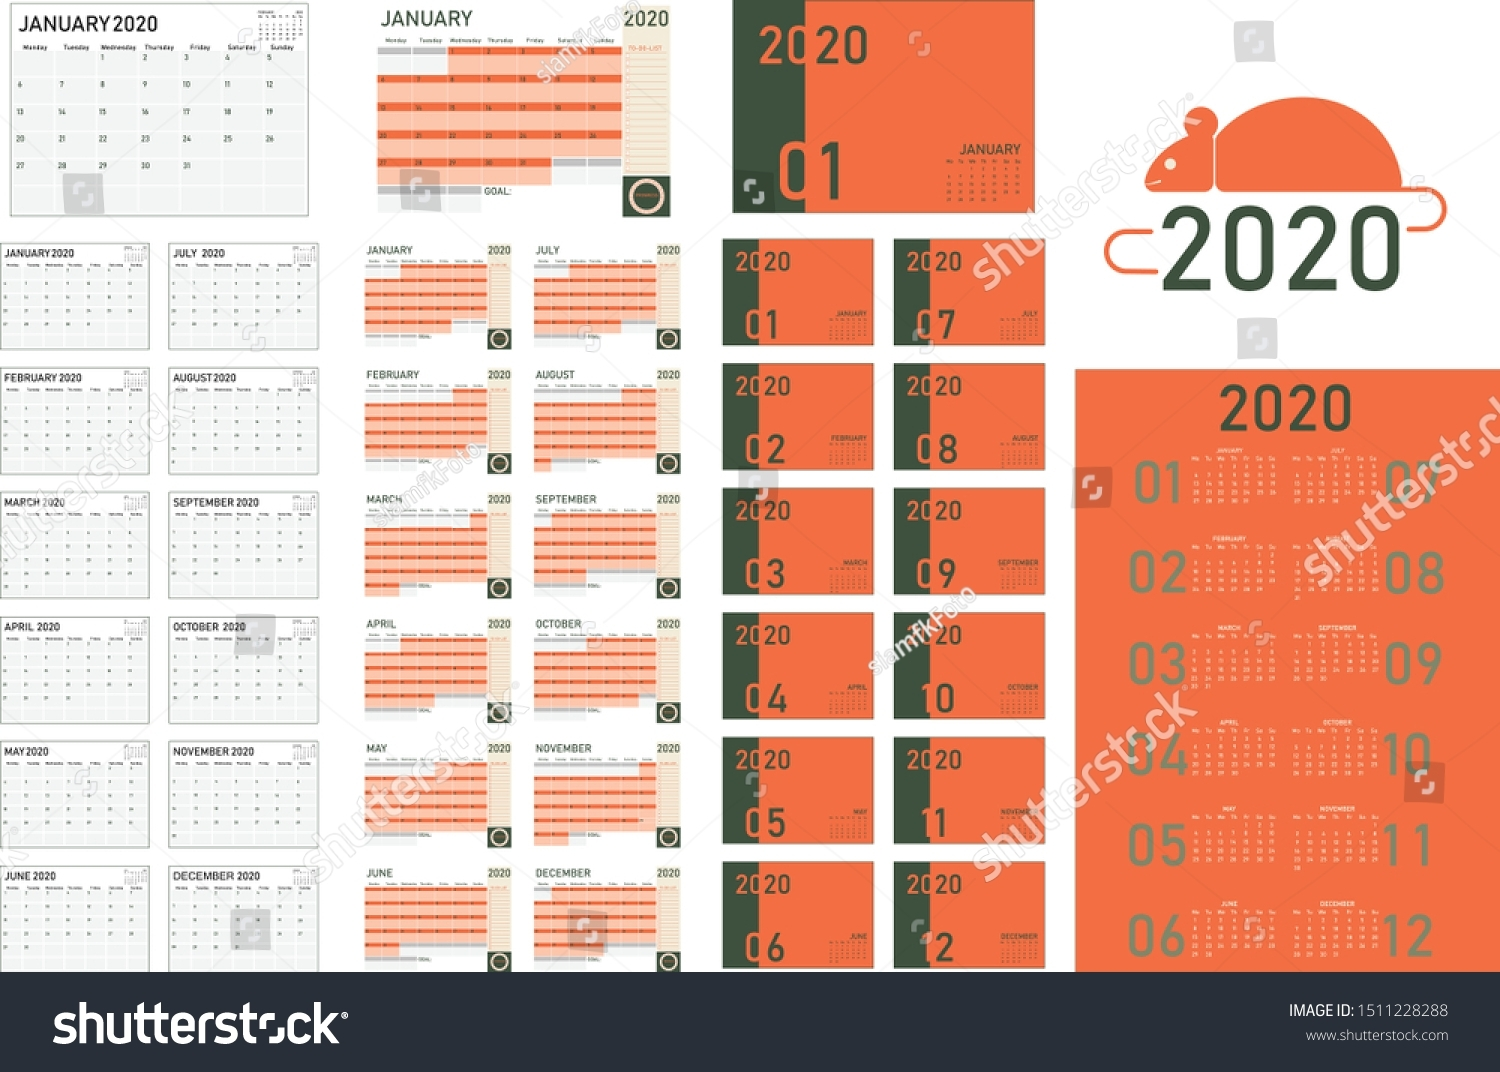 2020 Calendar Template Planner Collection Guideline Stock